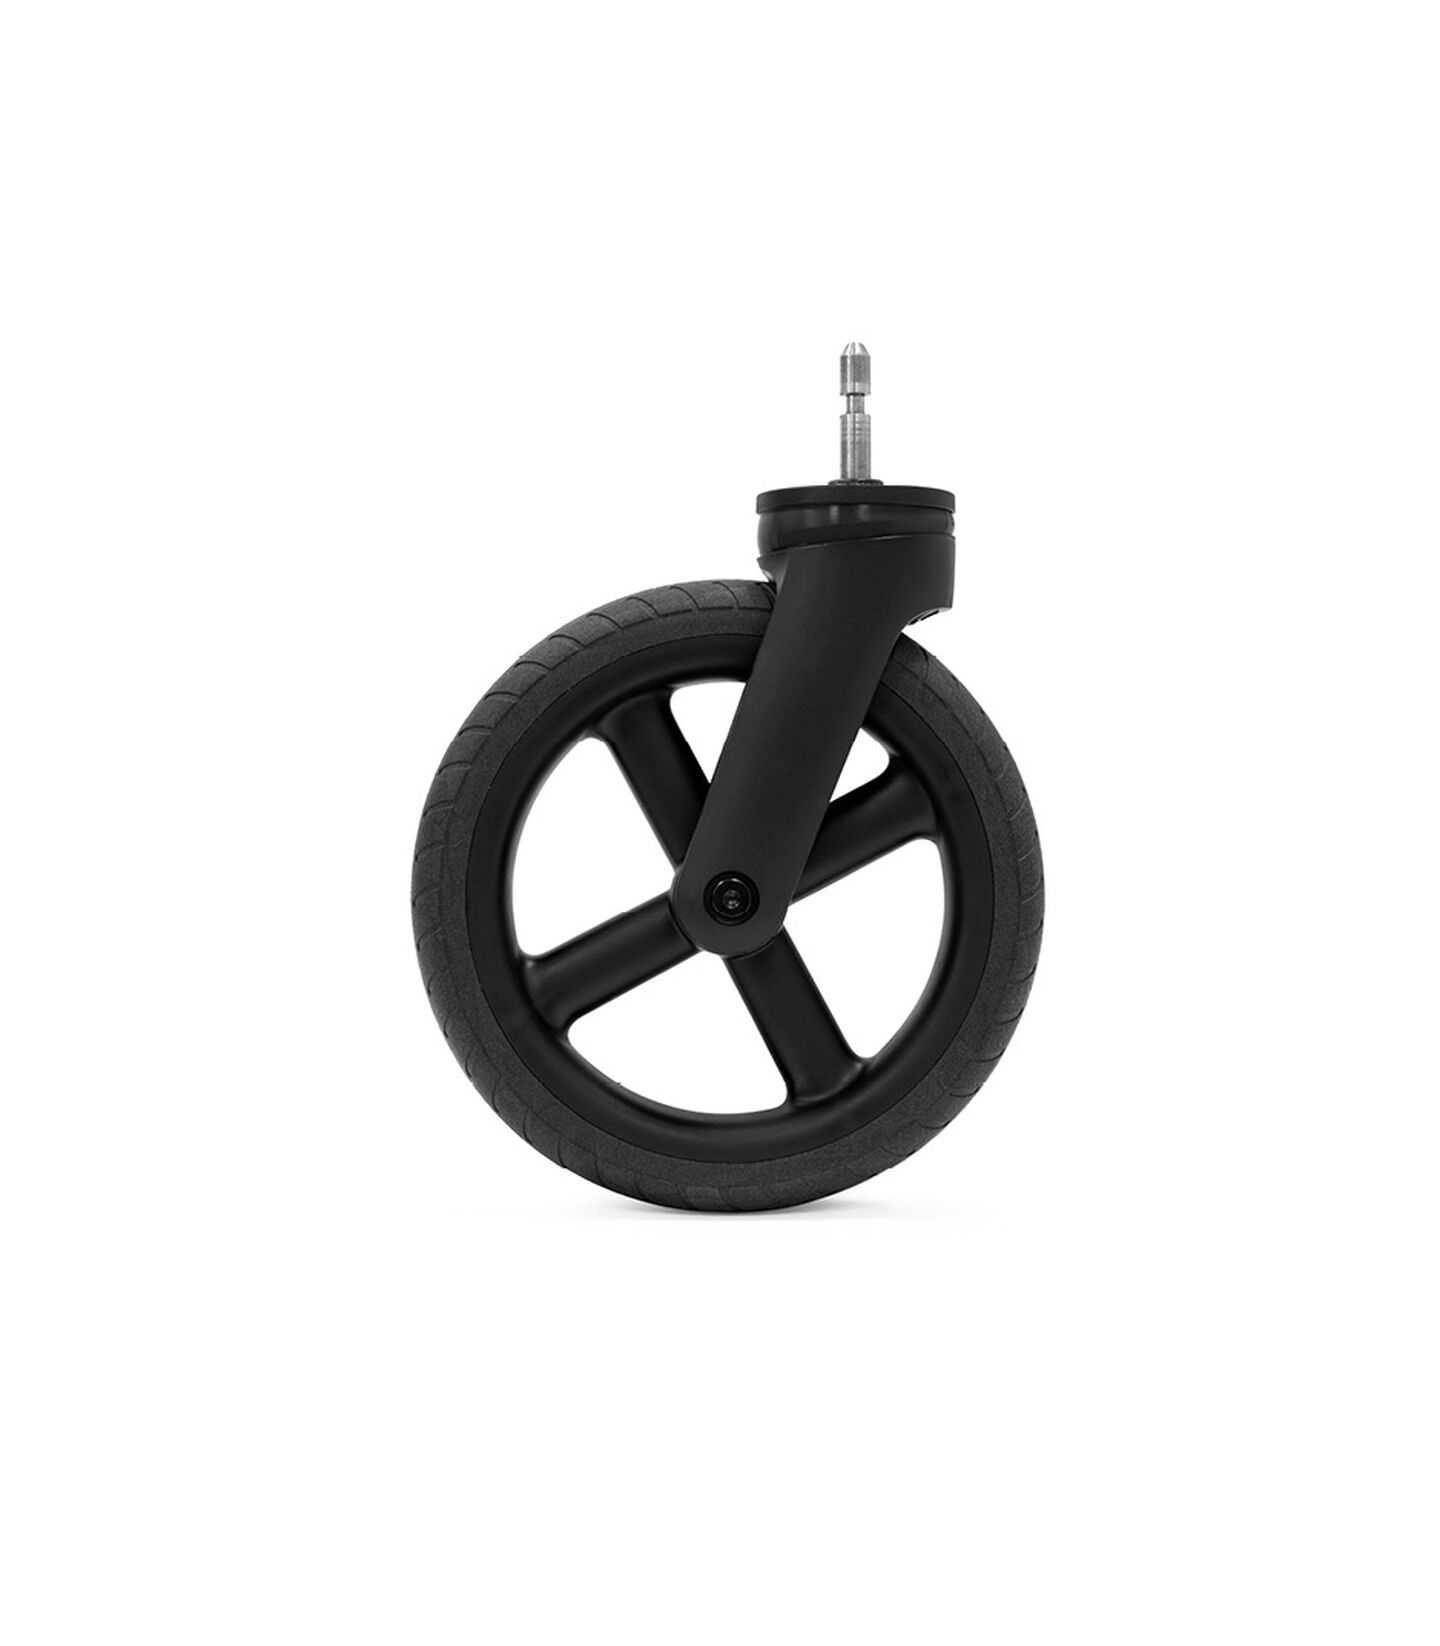 Stokke® Beat front wheel (single packed), , mainview view 2